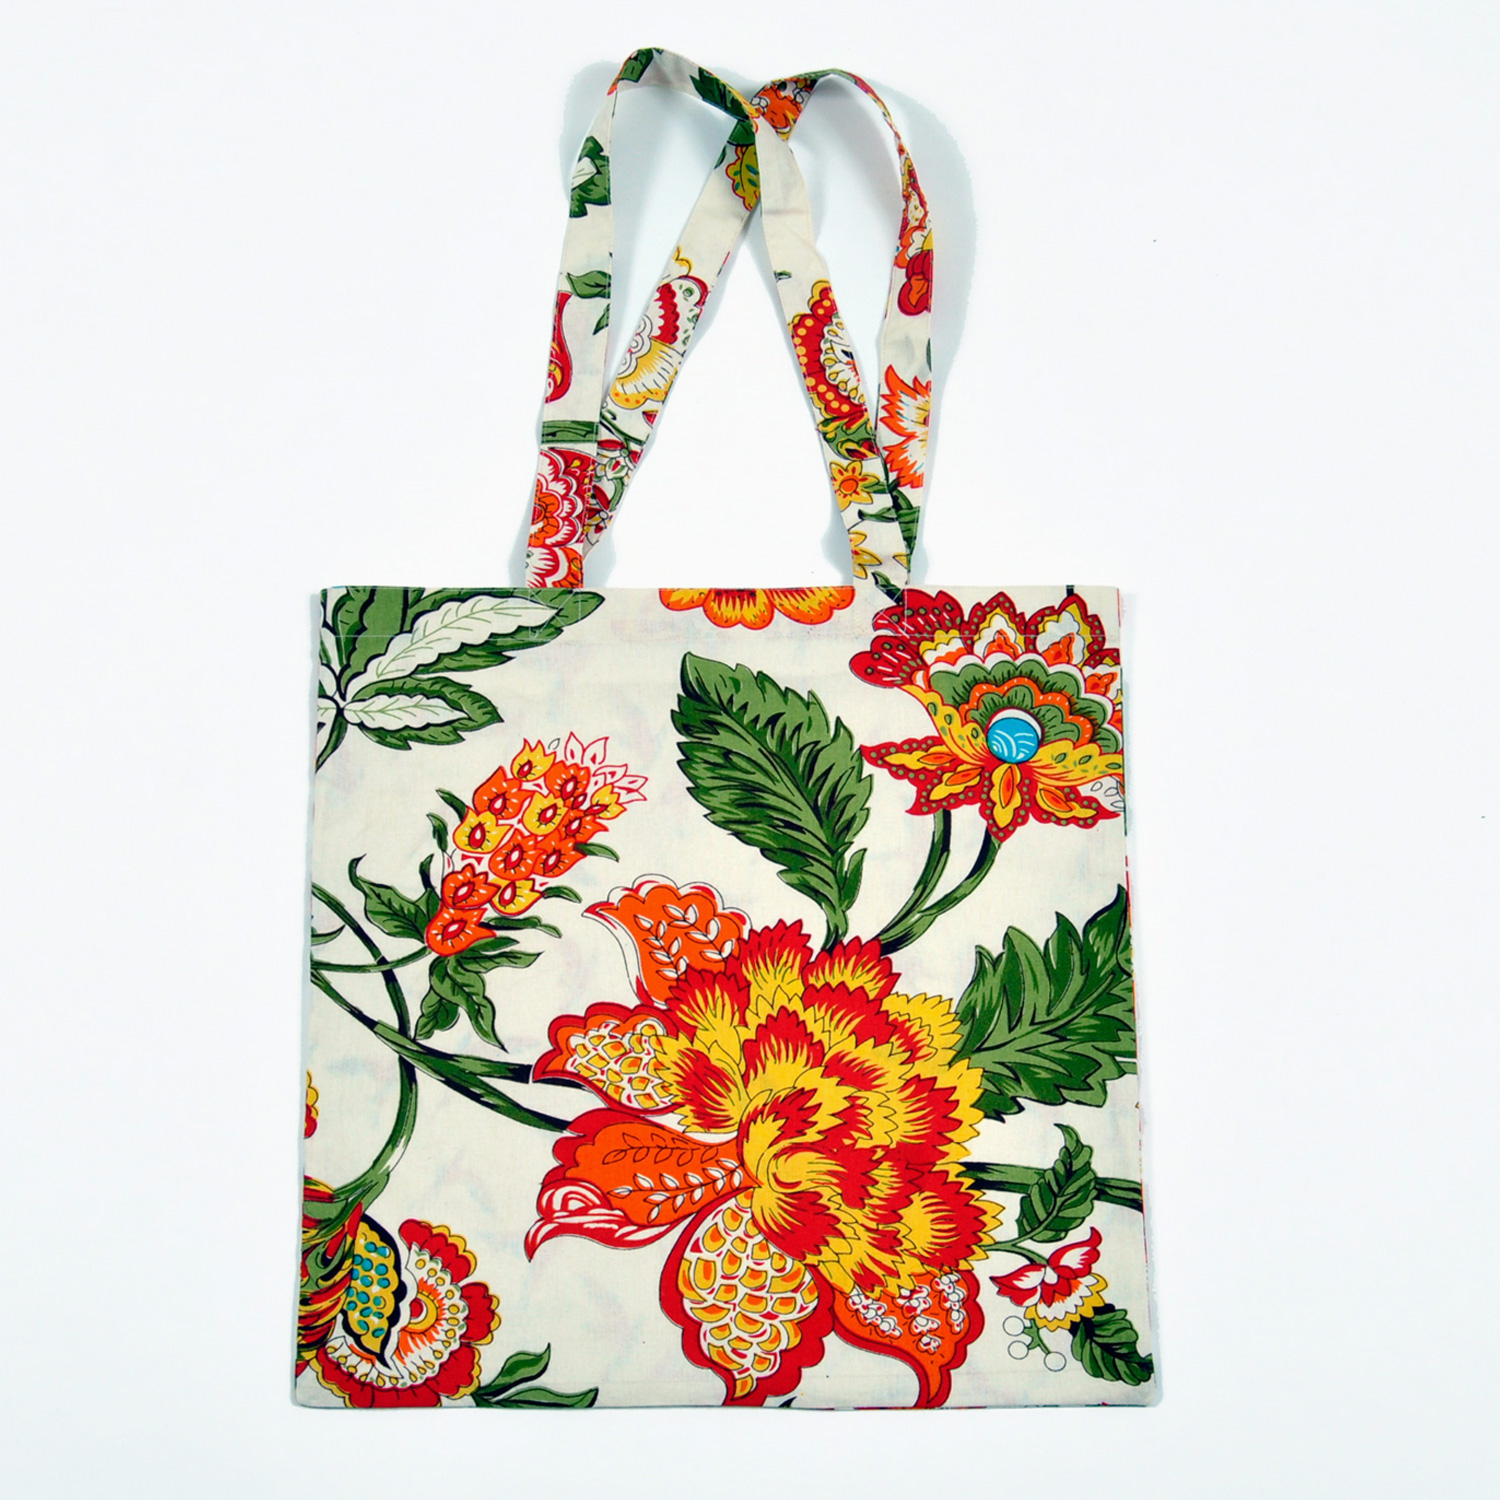 Reversible tote bag in Wild Floral